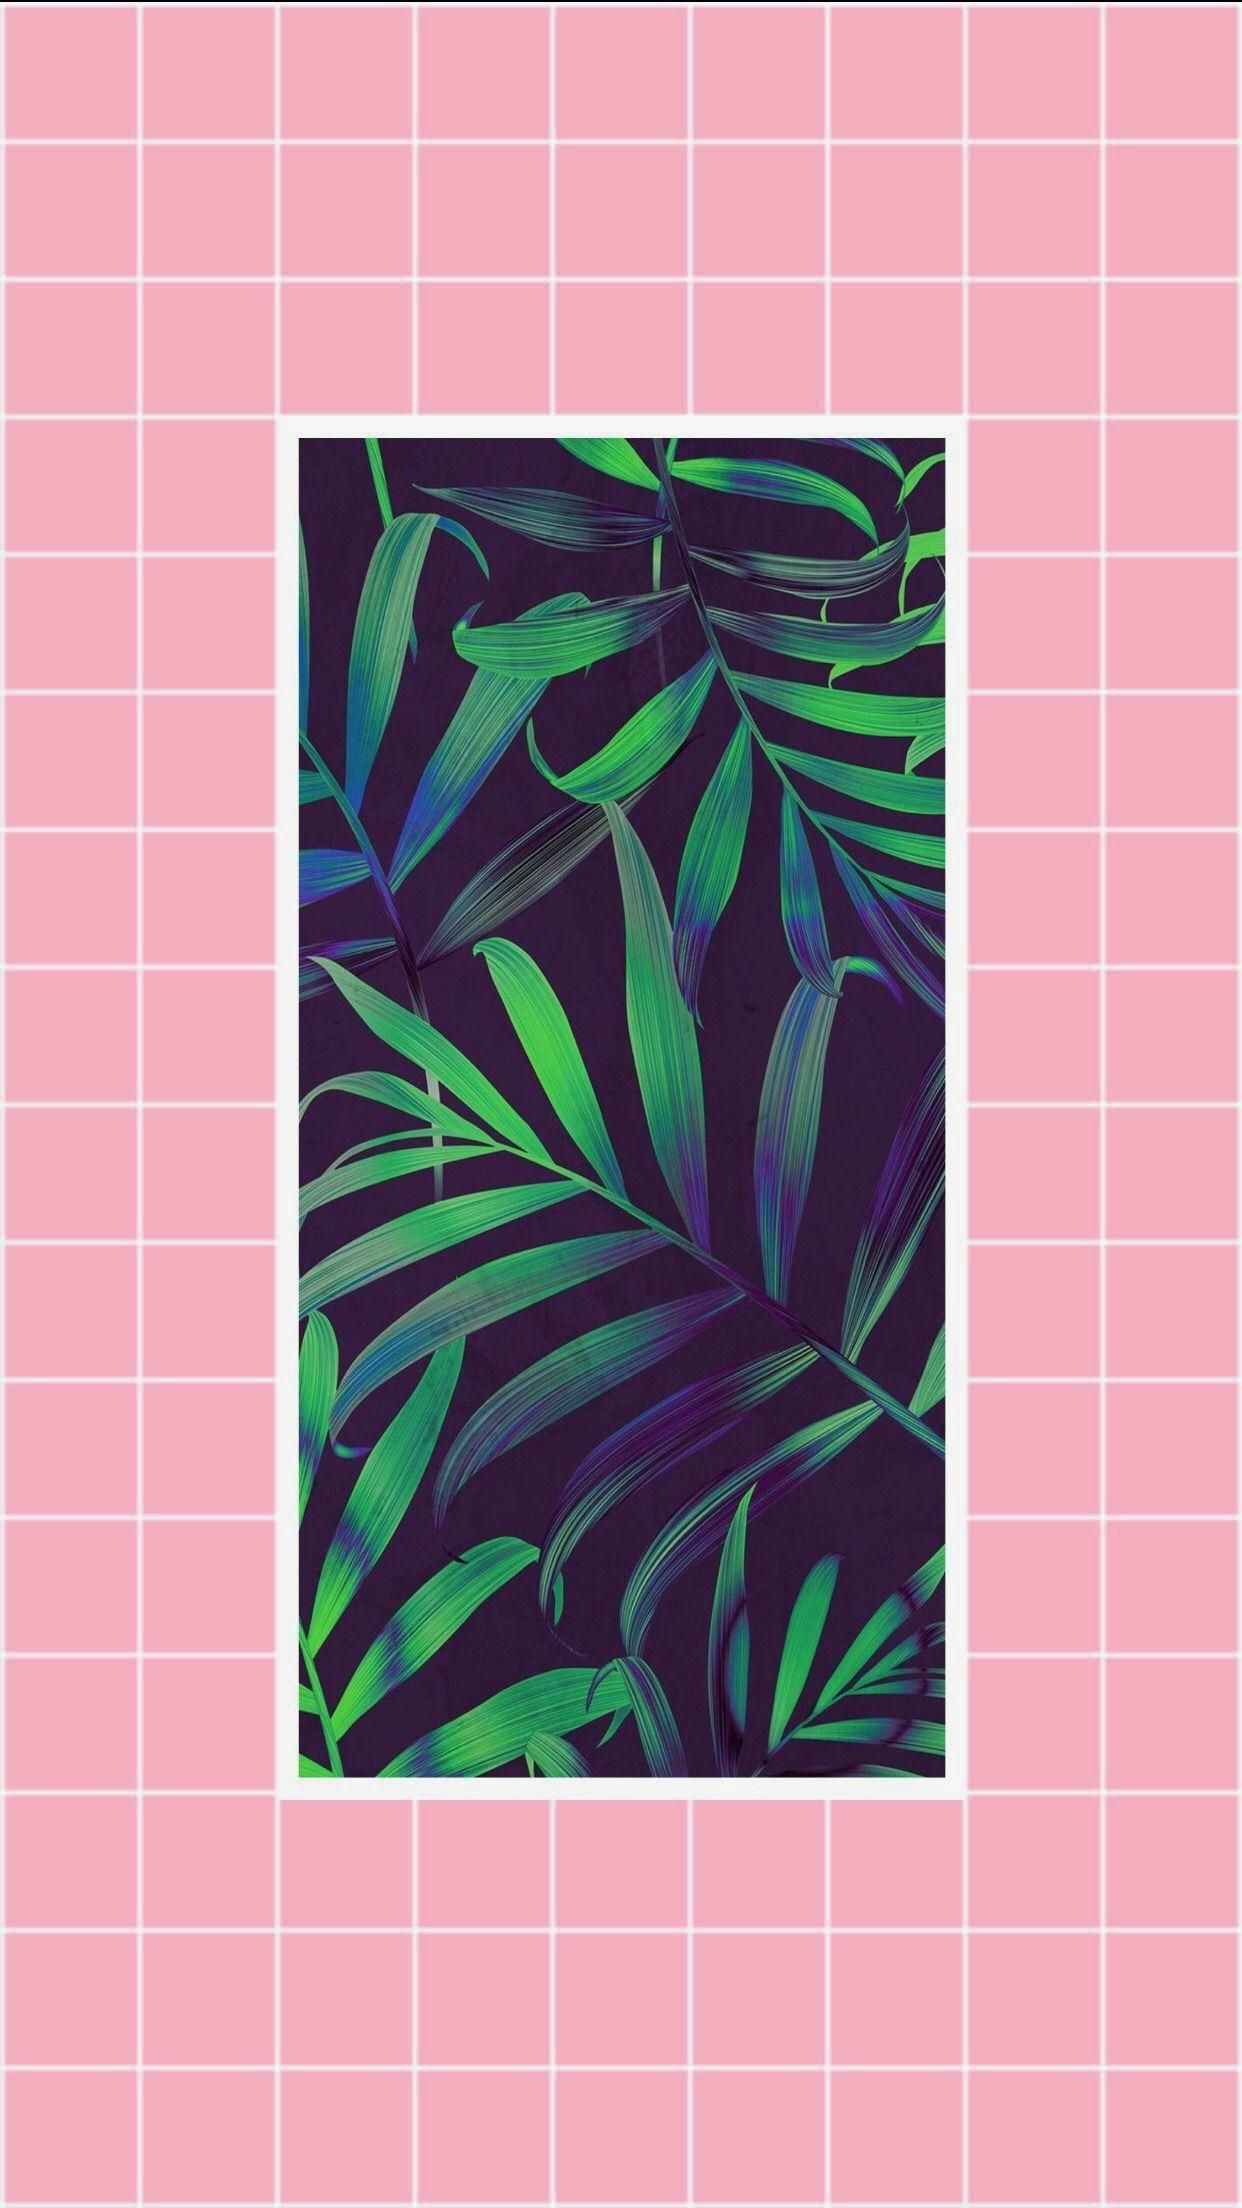 Aesthetic Vaporwave Wallpaper 2